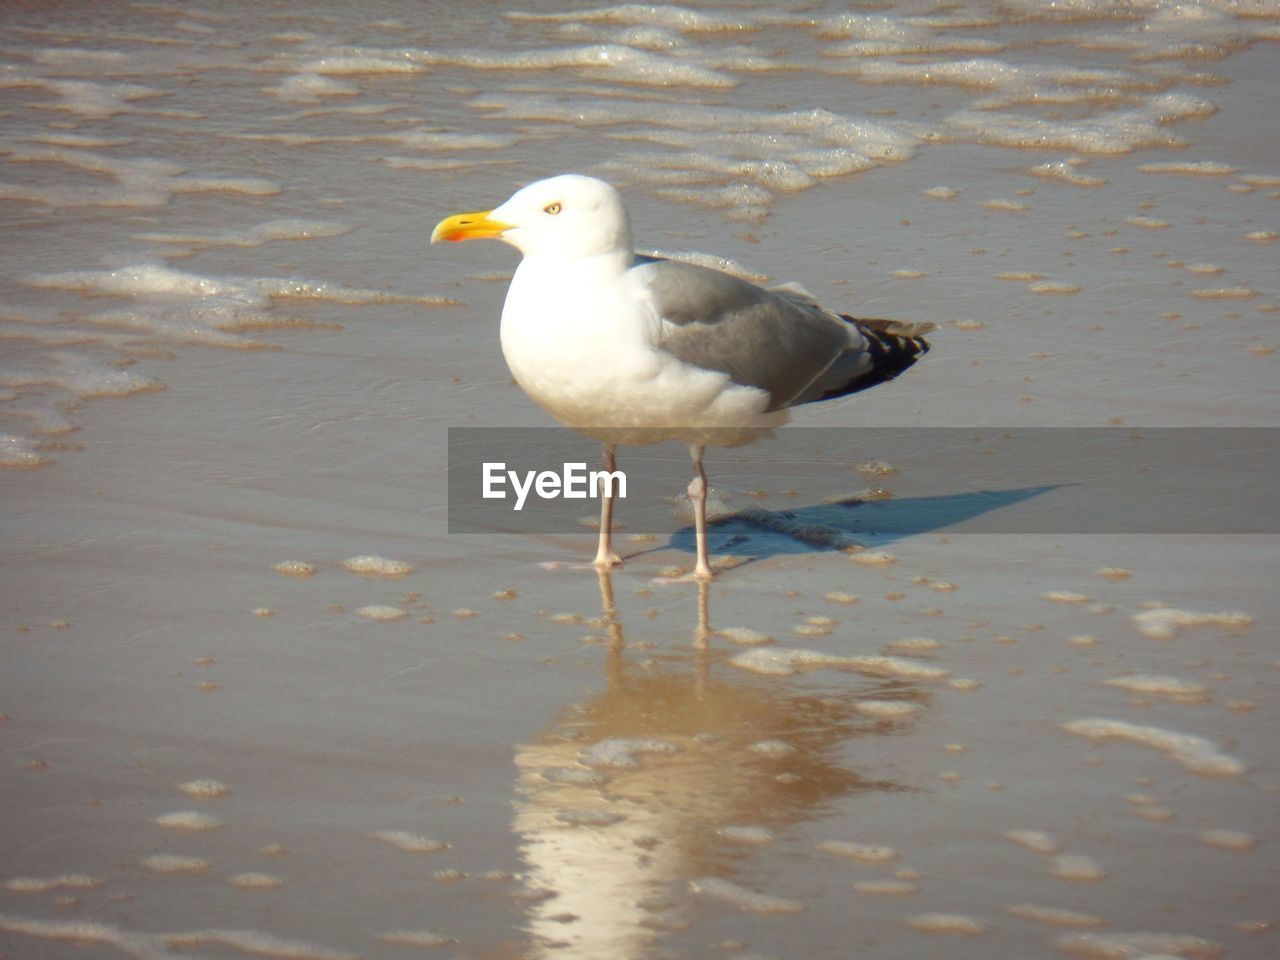 bird, animal, vertebrate, animal themes, animals in the wild, one animal, water, animal wildlife, seagull, beach, day, nature, no people, perching, land, sea, outdoors, sand, reflection